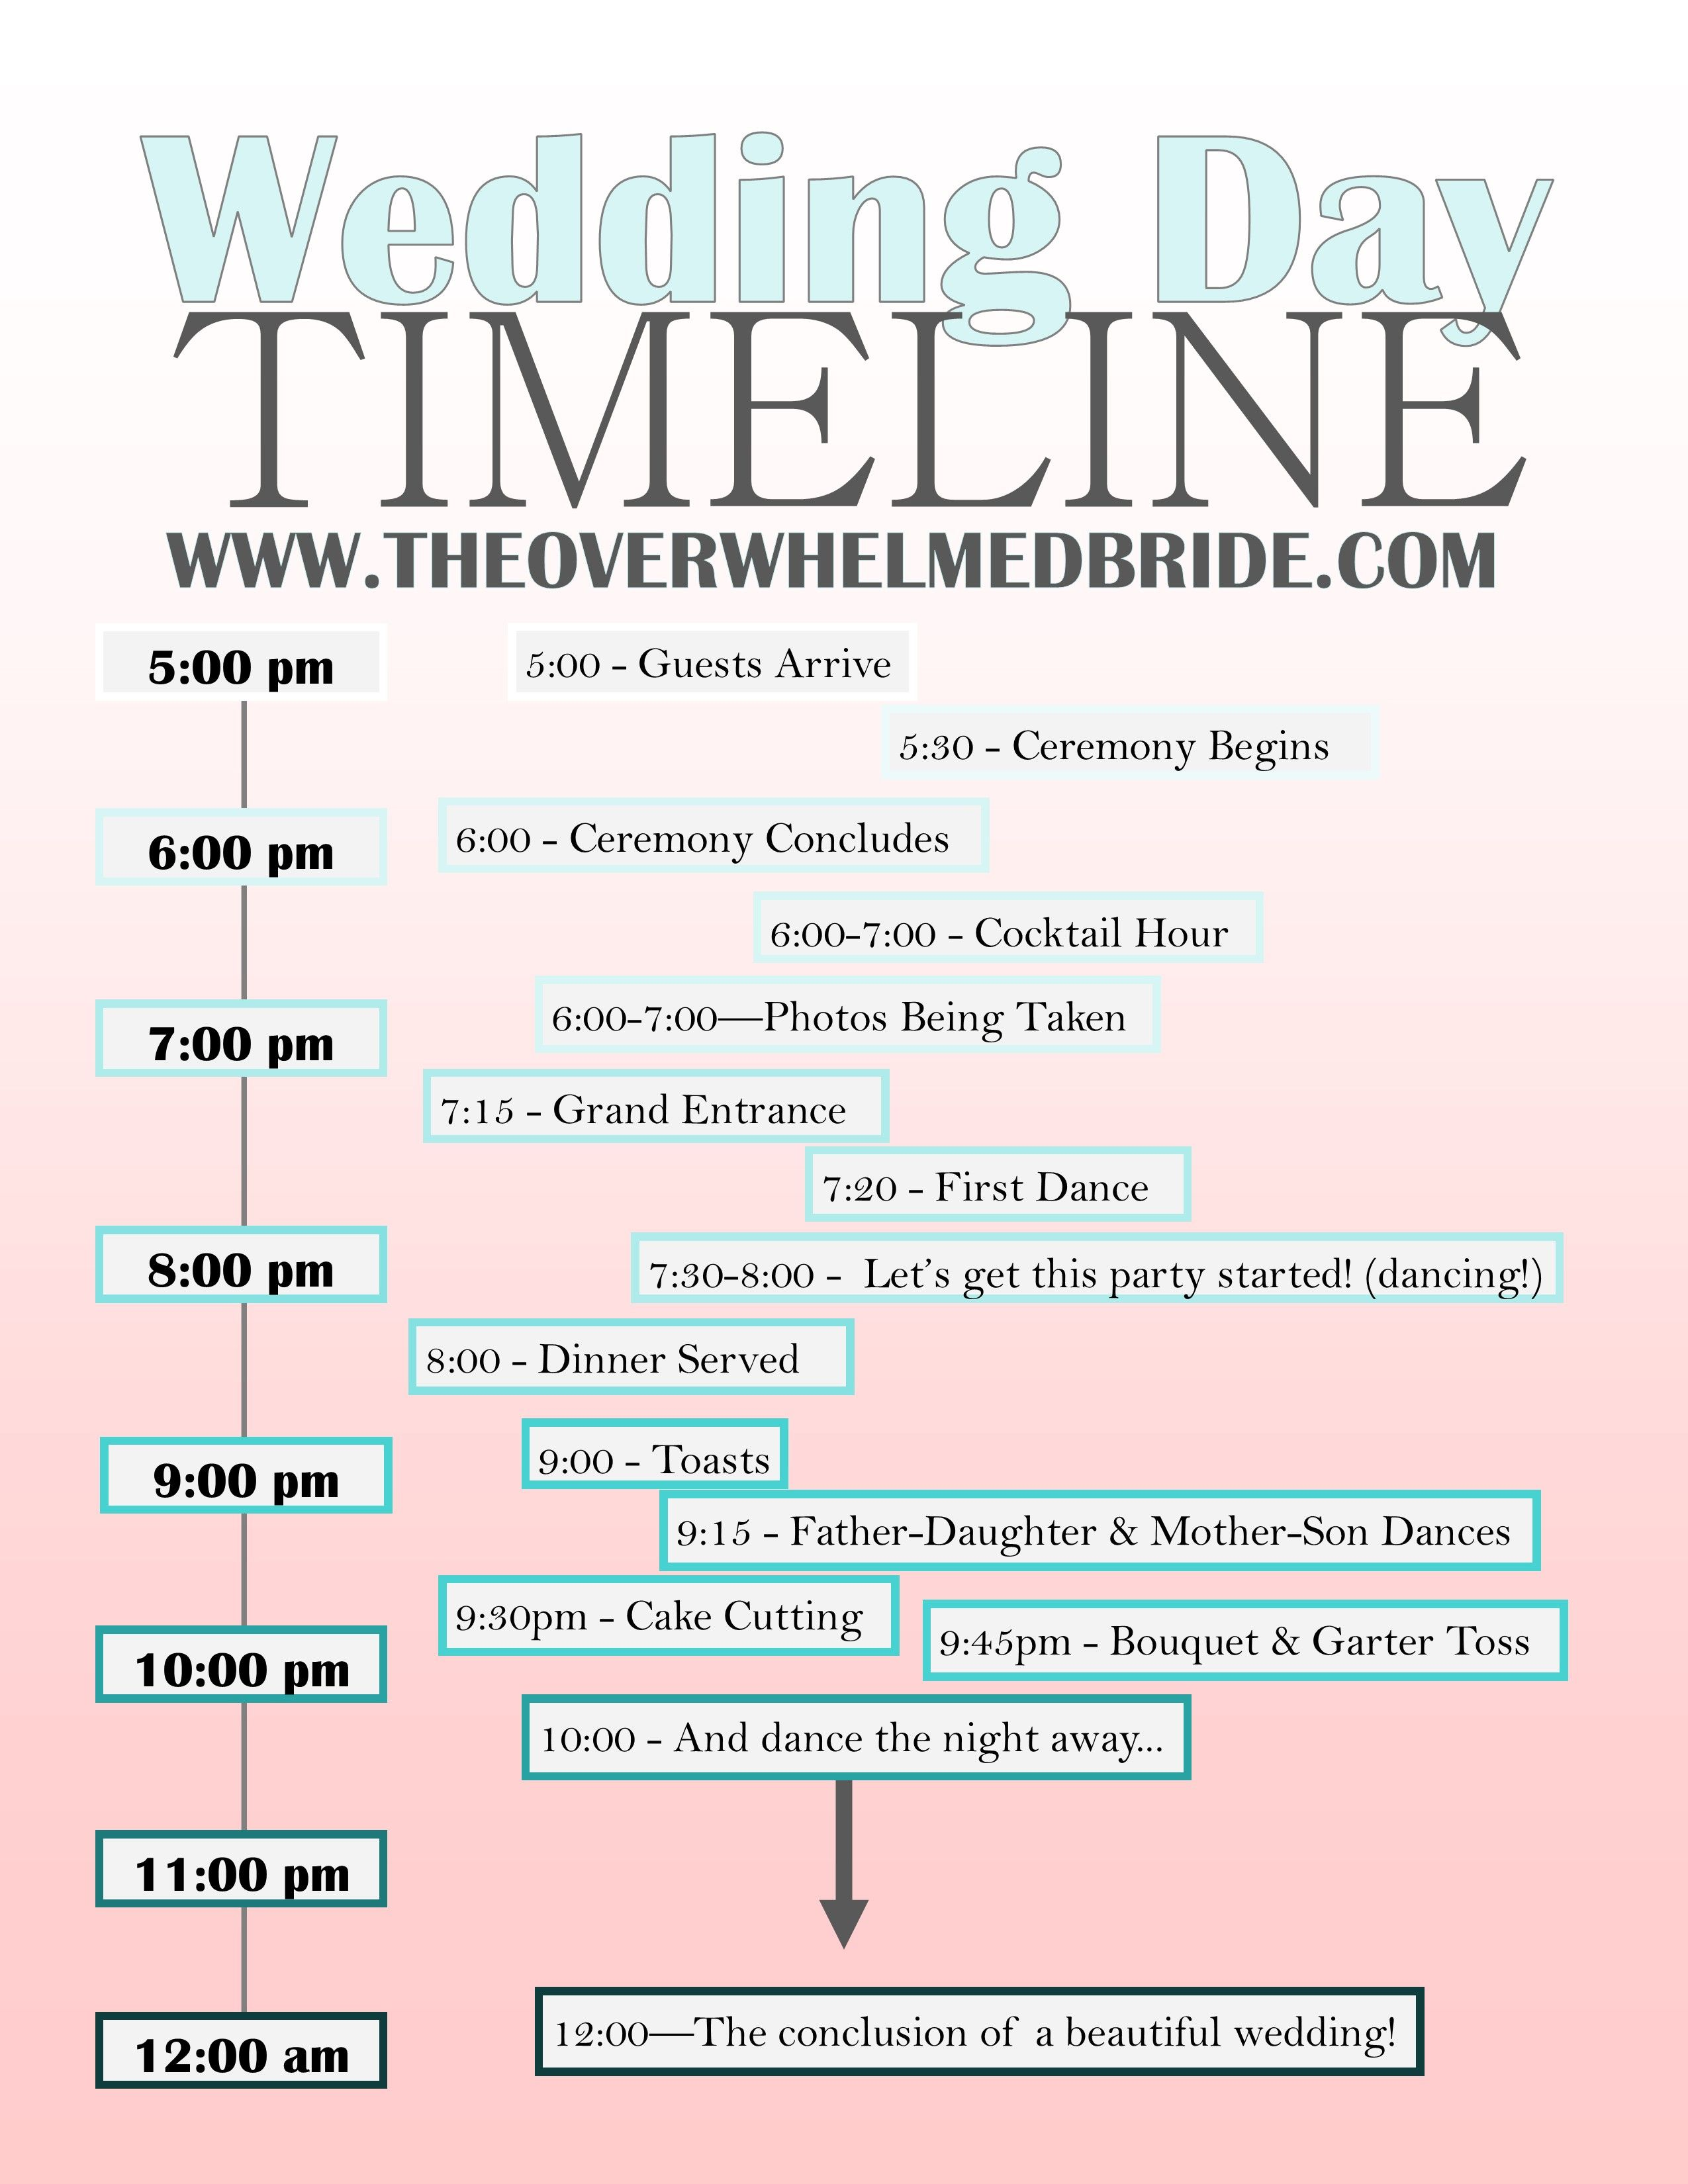 Your Wedding Day Timeline